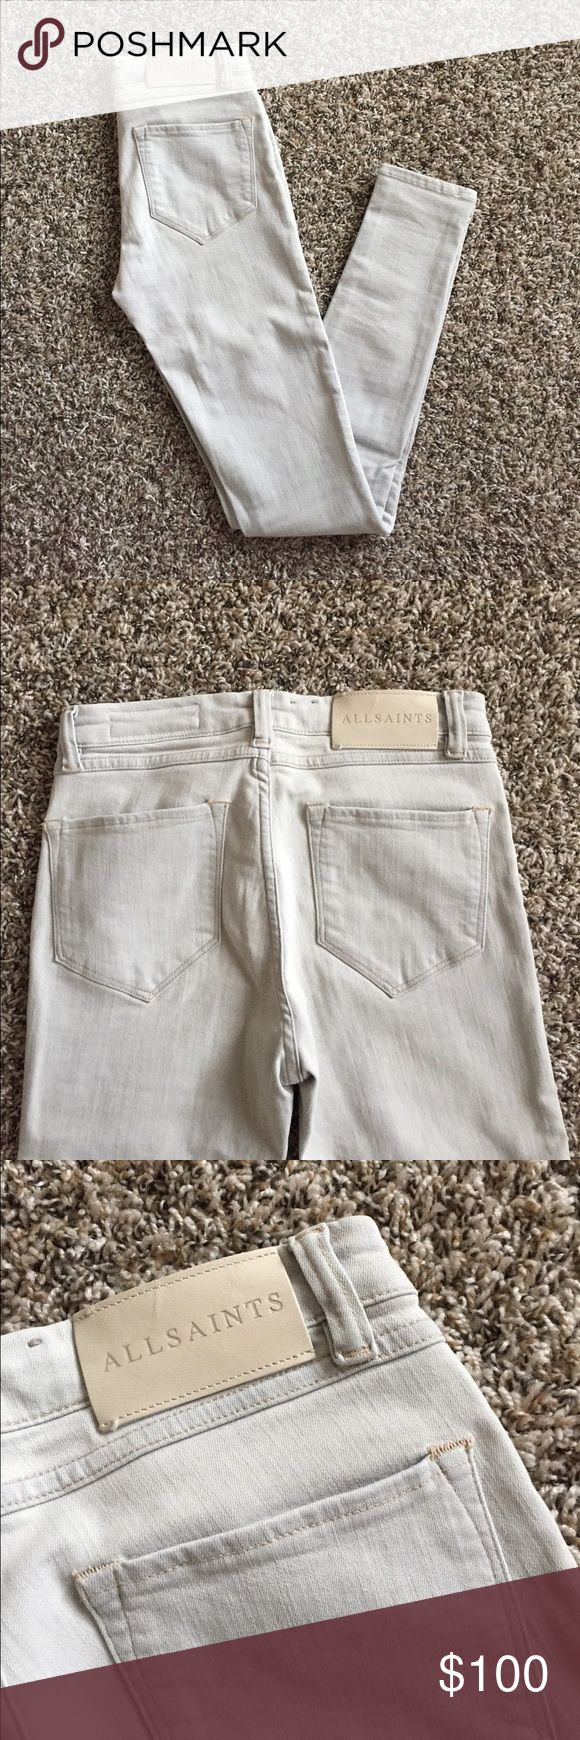 All Saints Grace Skinny Jeans SZ 26 Gorgeous light grey wash. Super stretchy and comfortable. 5-pocket style skinny with medium rise. Only worn once. In excellent condition. So flattering and one of the most amazing pairs I've come across from All Saints. A bit on the fence about selling but I never seem to get around to wearing them All Saints Jeans Skinny